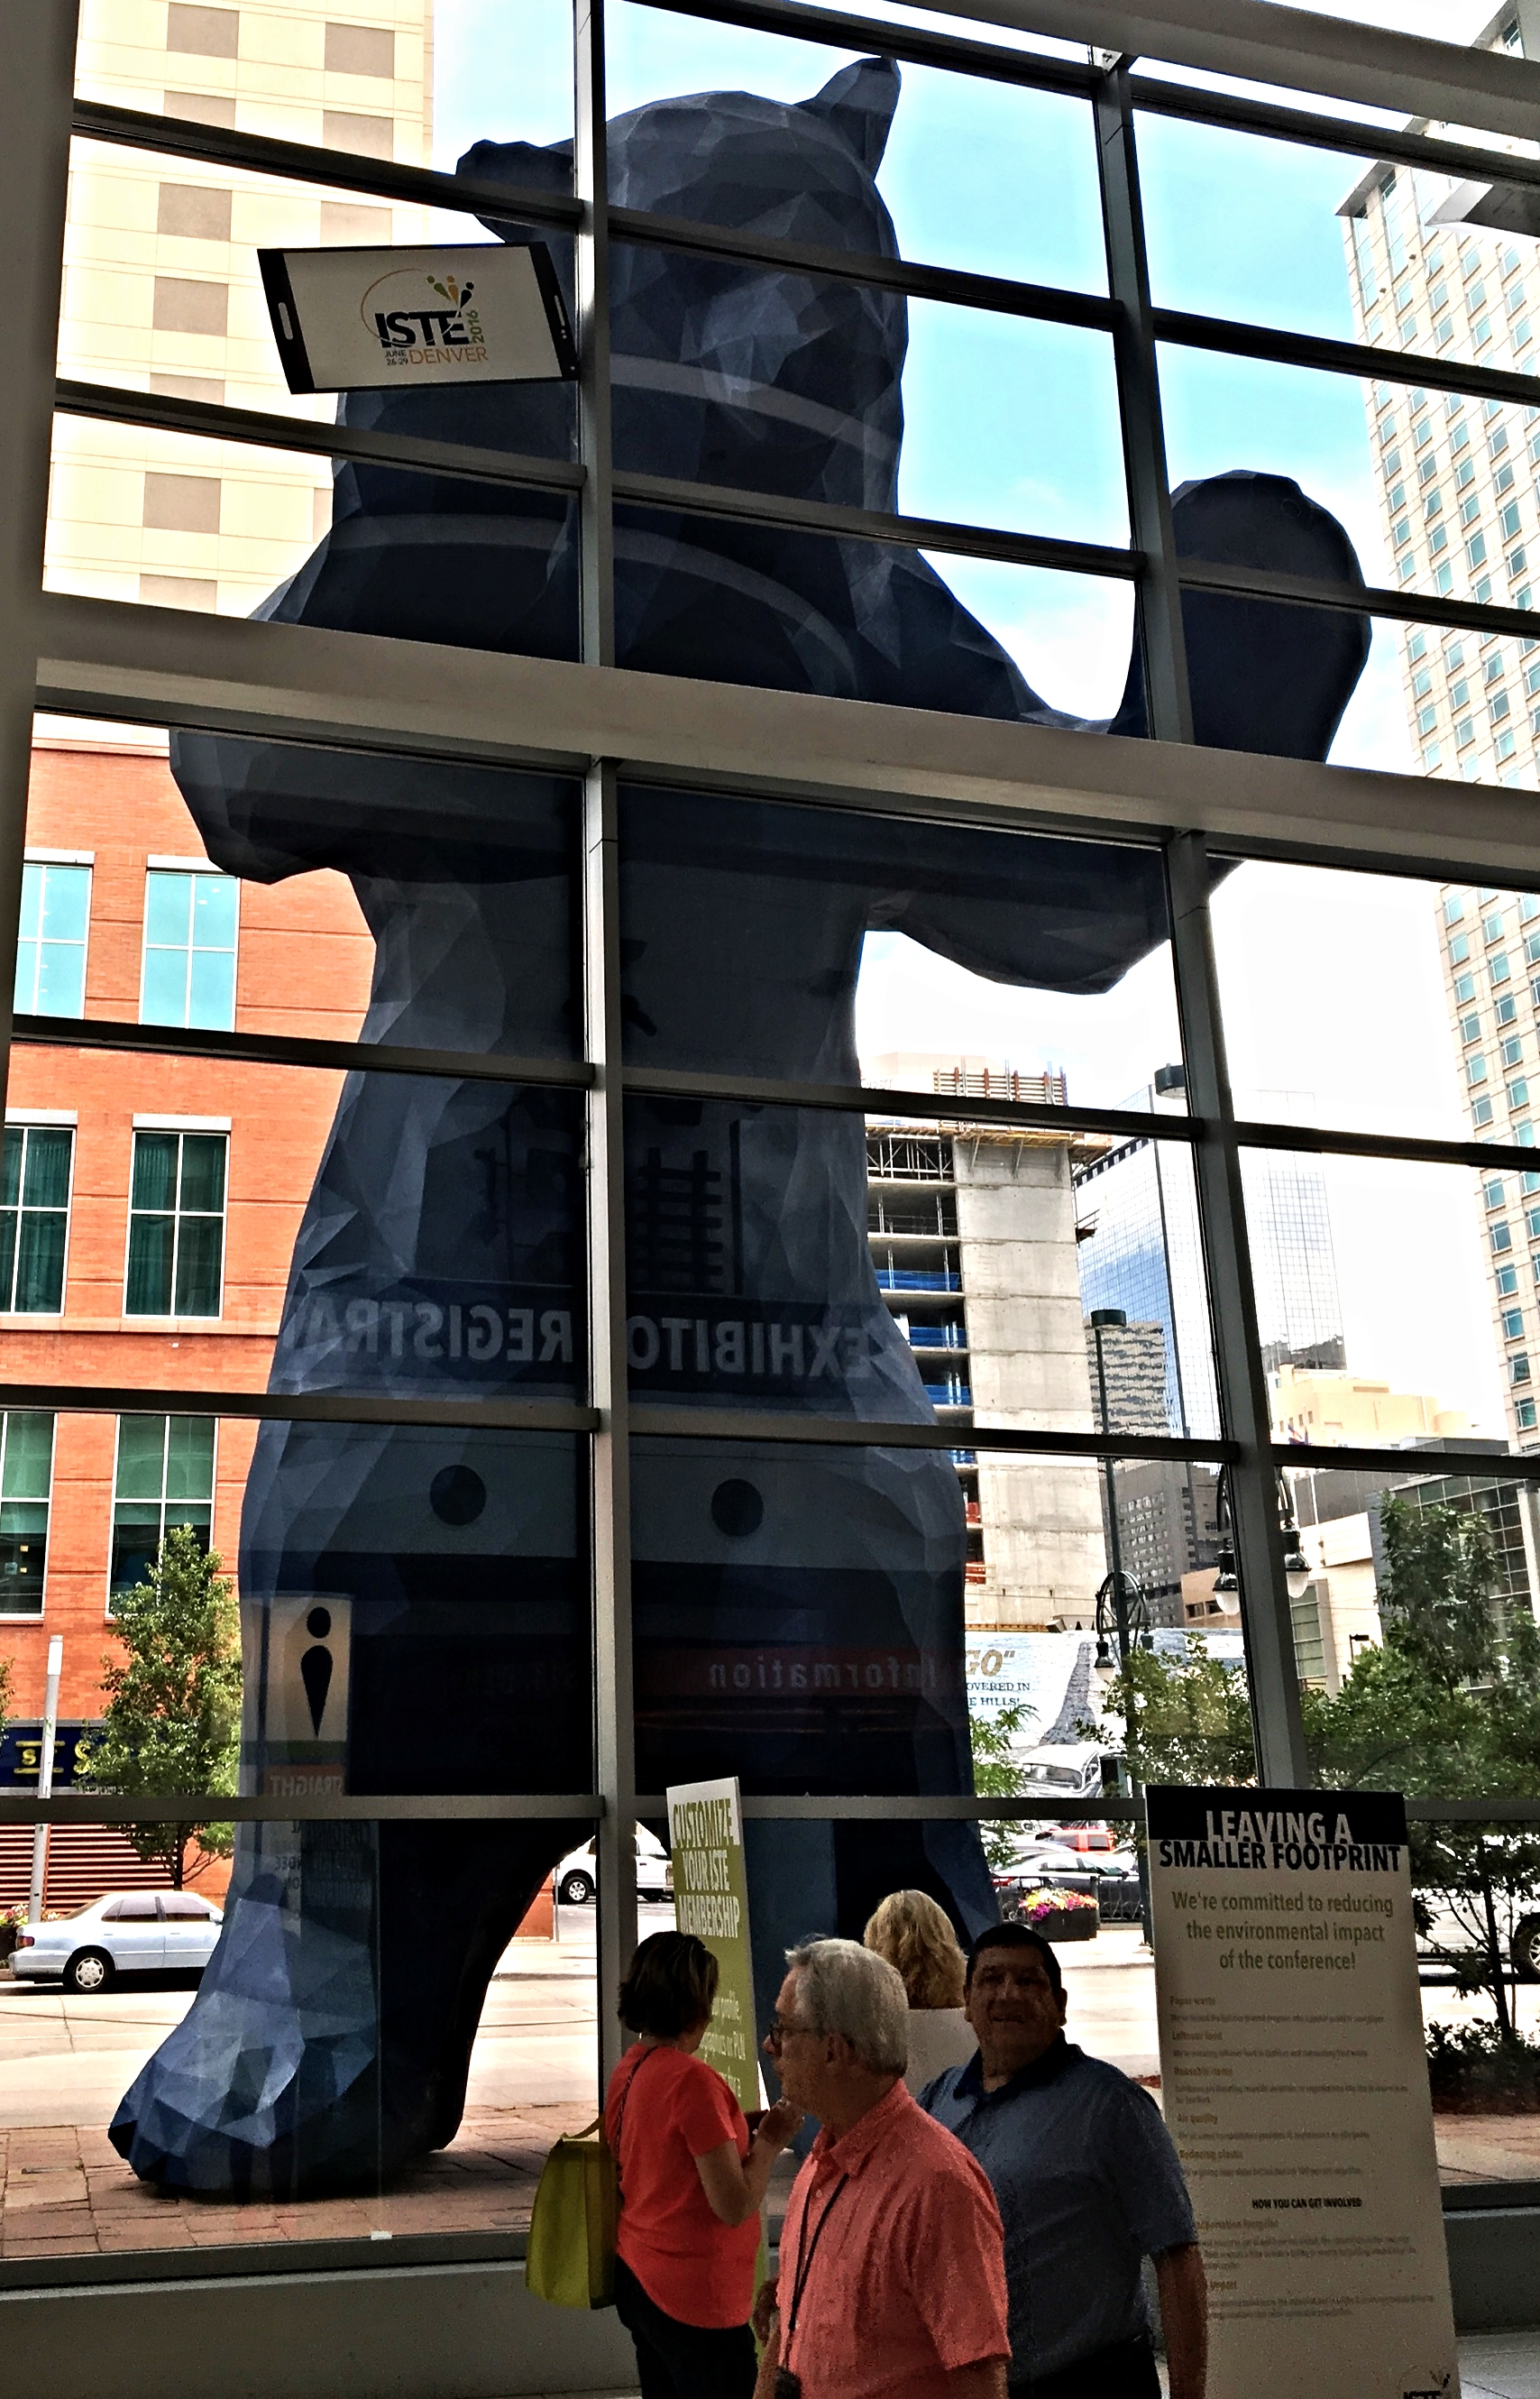 The ISTE bear was bummed he couldn't get in (he was too big to fit in the building).